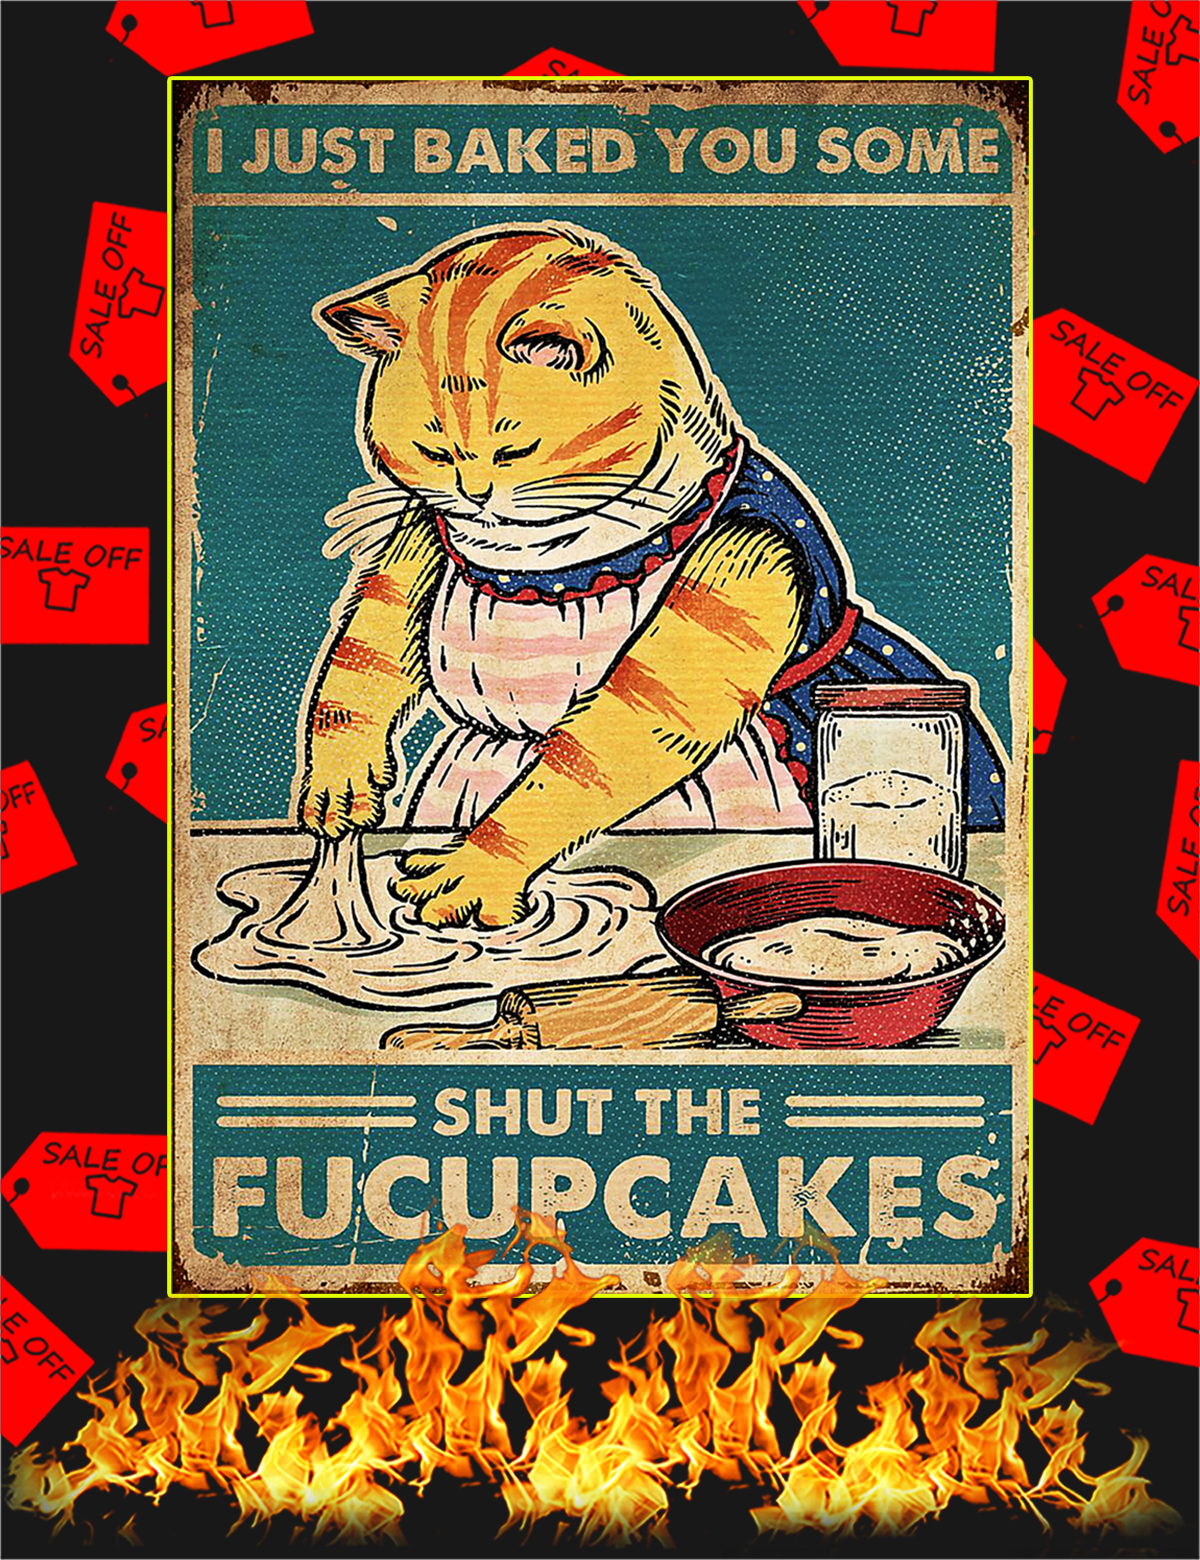 Cat I just baked you some poster - A1